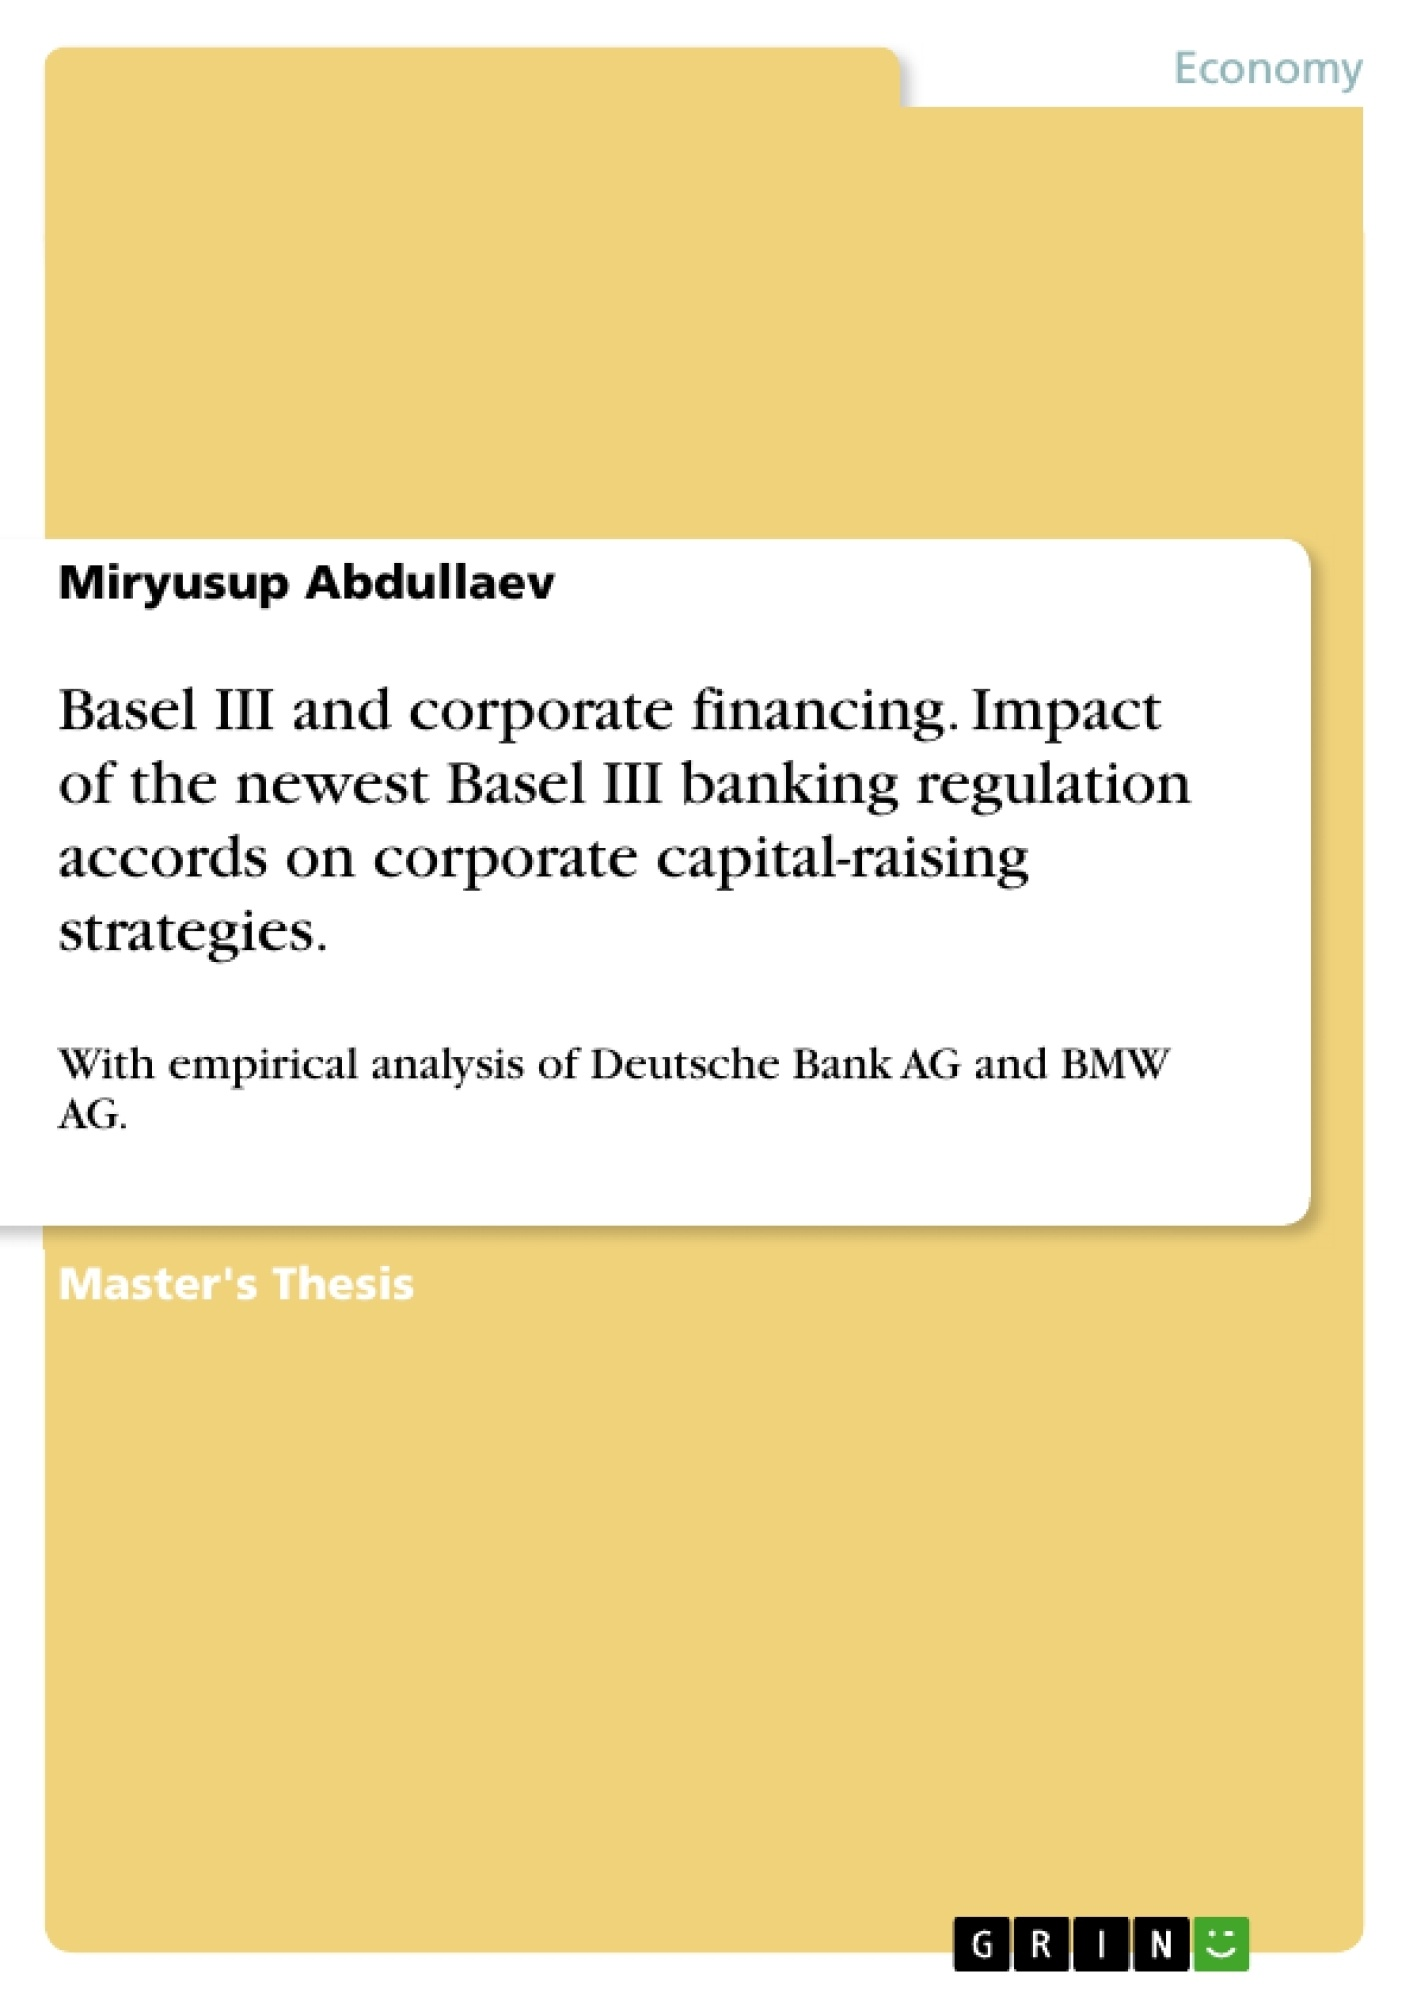 regulation of banking and financial services essay Financial services modernization act of 1999, commonly called gramm-leach-bliley november 12, 1999 this legislation, signed into law by president bill clinton in november 1999, repealed large parts of the glass-steagall act, which had separated commercial and investment banking since 1933.